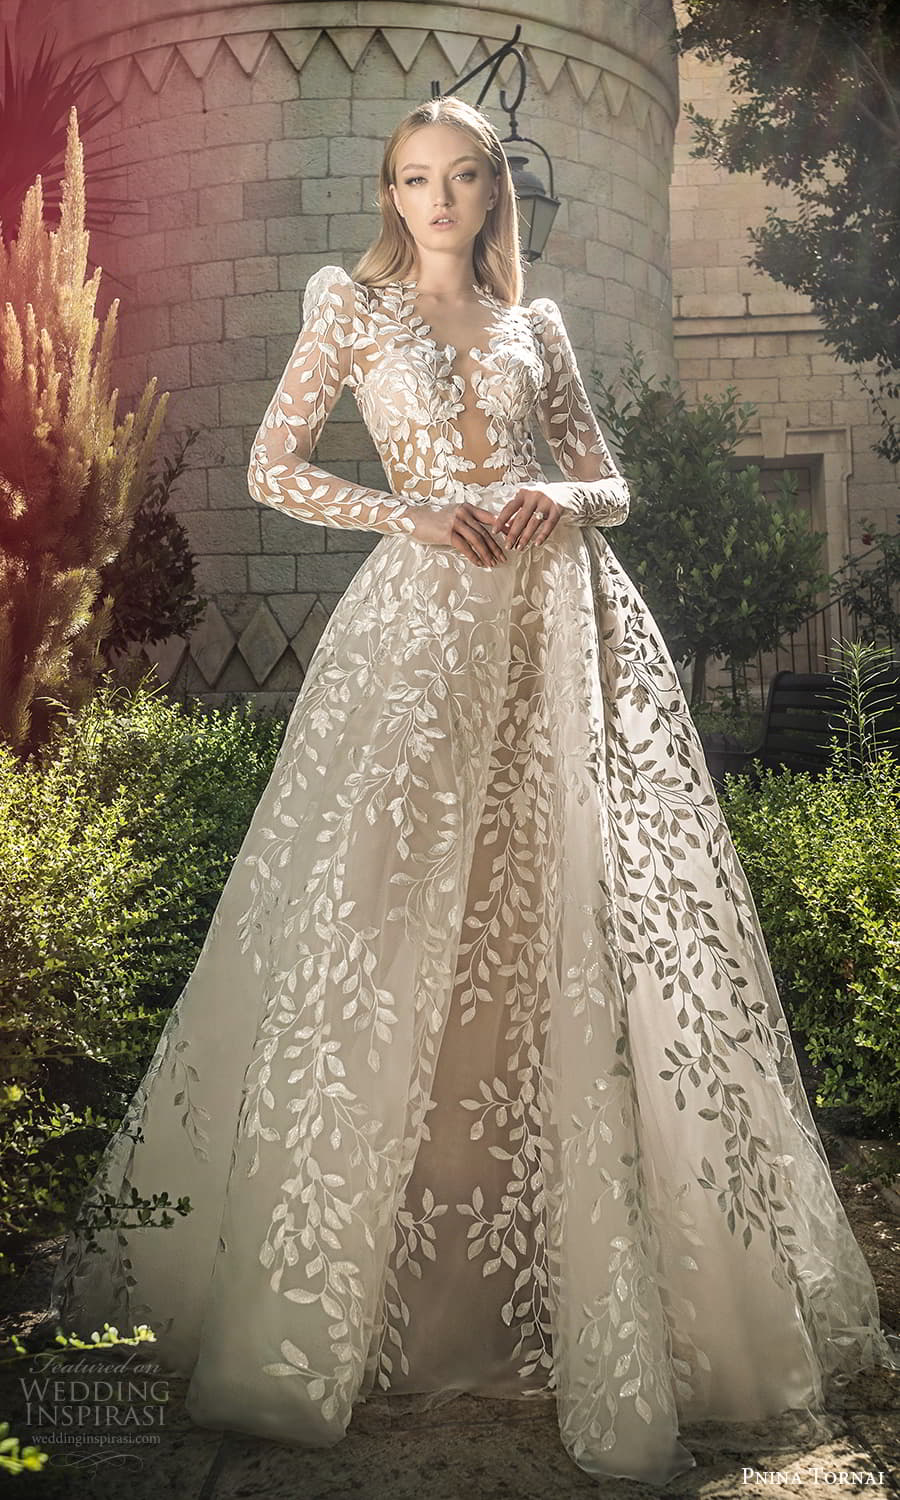 pnina tornai 2022 love bridal long puff sleeve plunging v neckline fully embellished lace a line ball gown wedding dress chapel train (1) mv